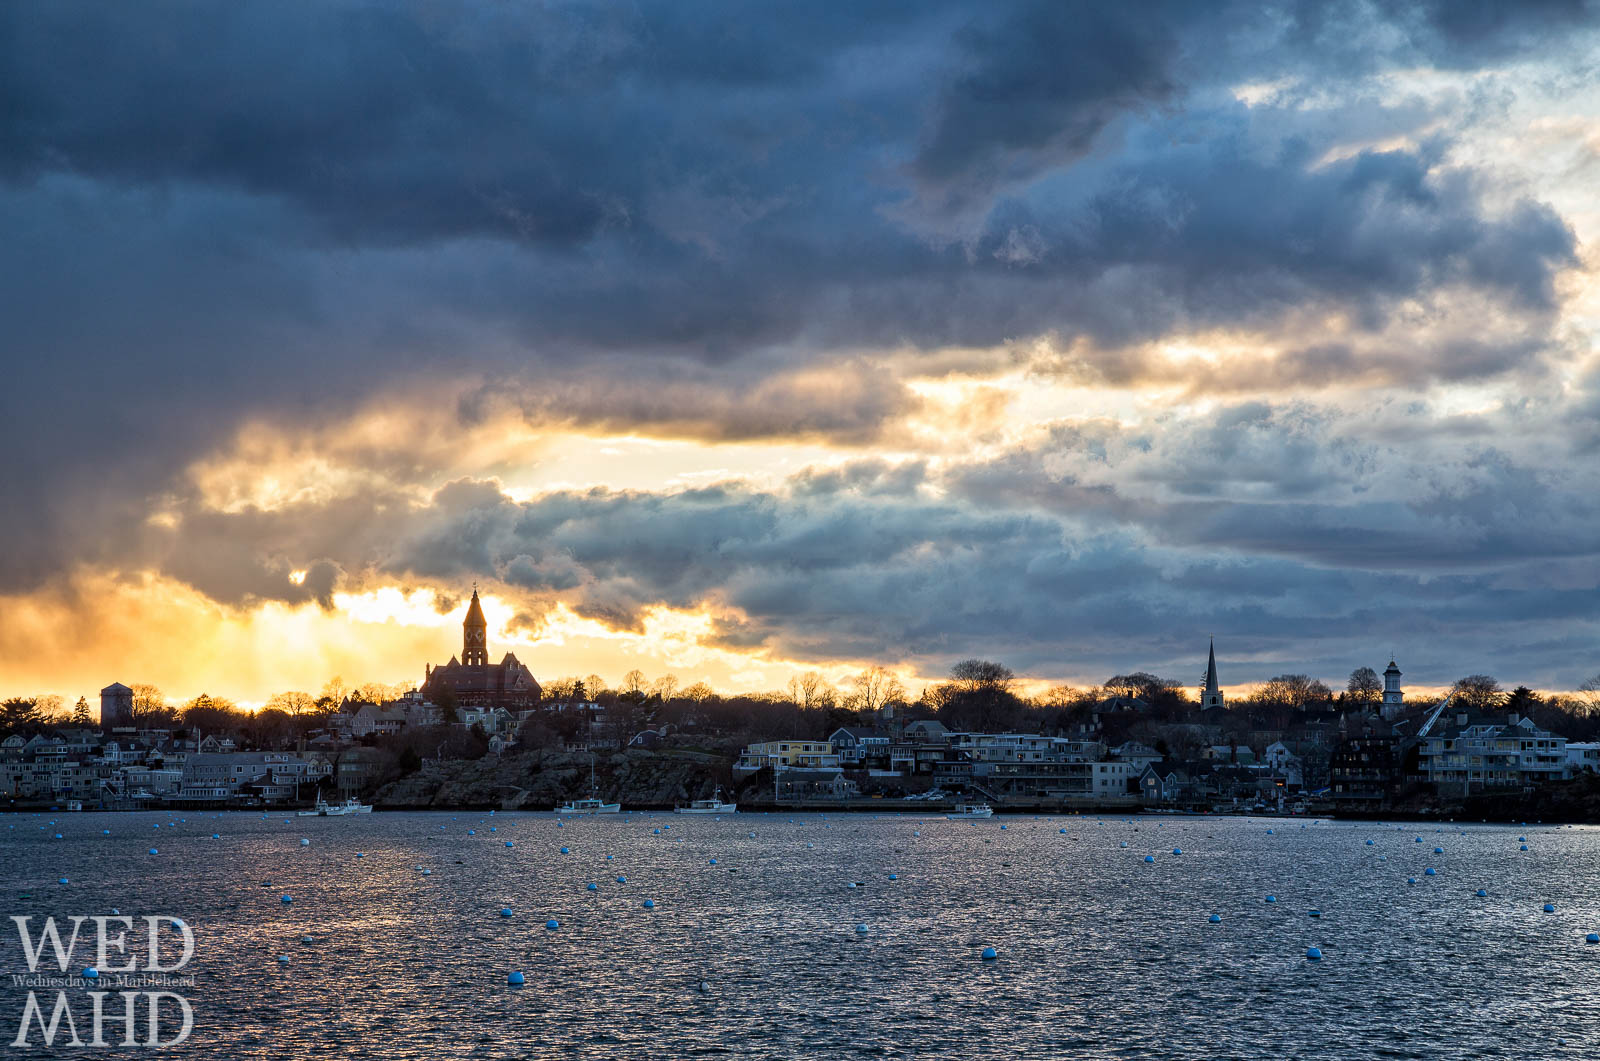 Golden light mixes with dramatic cloud structures over Marblehead's skyline featuring Abbot Hall, St. Michael's and Grace Community Church steeples.